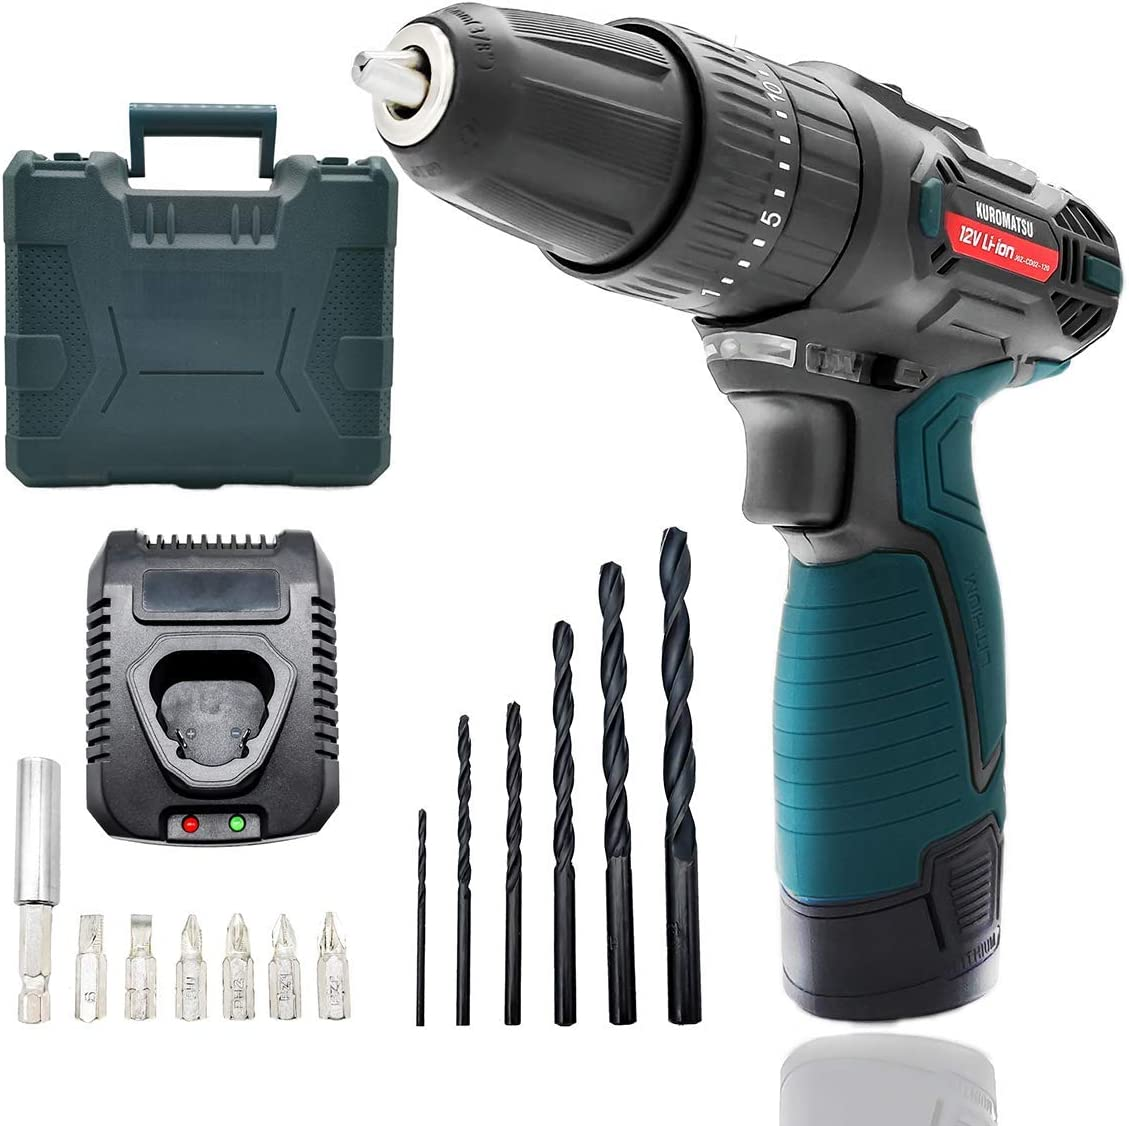 Kuromatsu Cordless Drill Screwdriver 21 3 Torque Gears, DC12V 24N.m 1500mAh Variable Speed Switch, LED Work Light, 13pcs Driver Bits Included